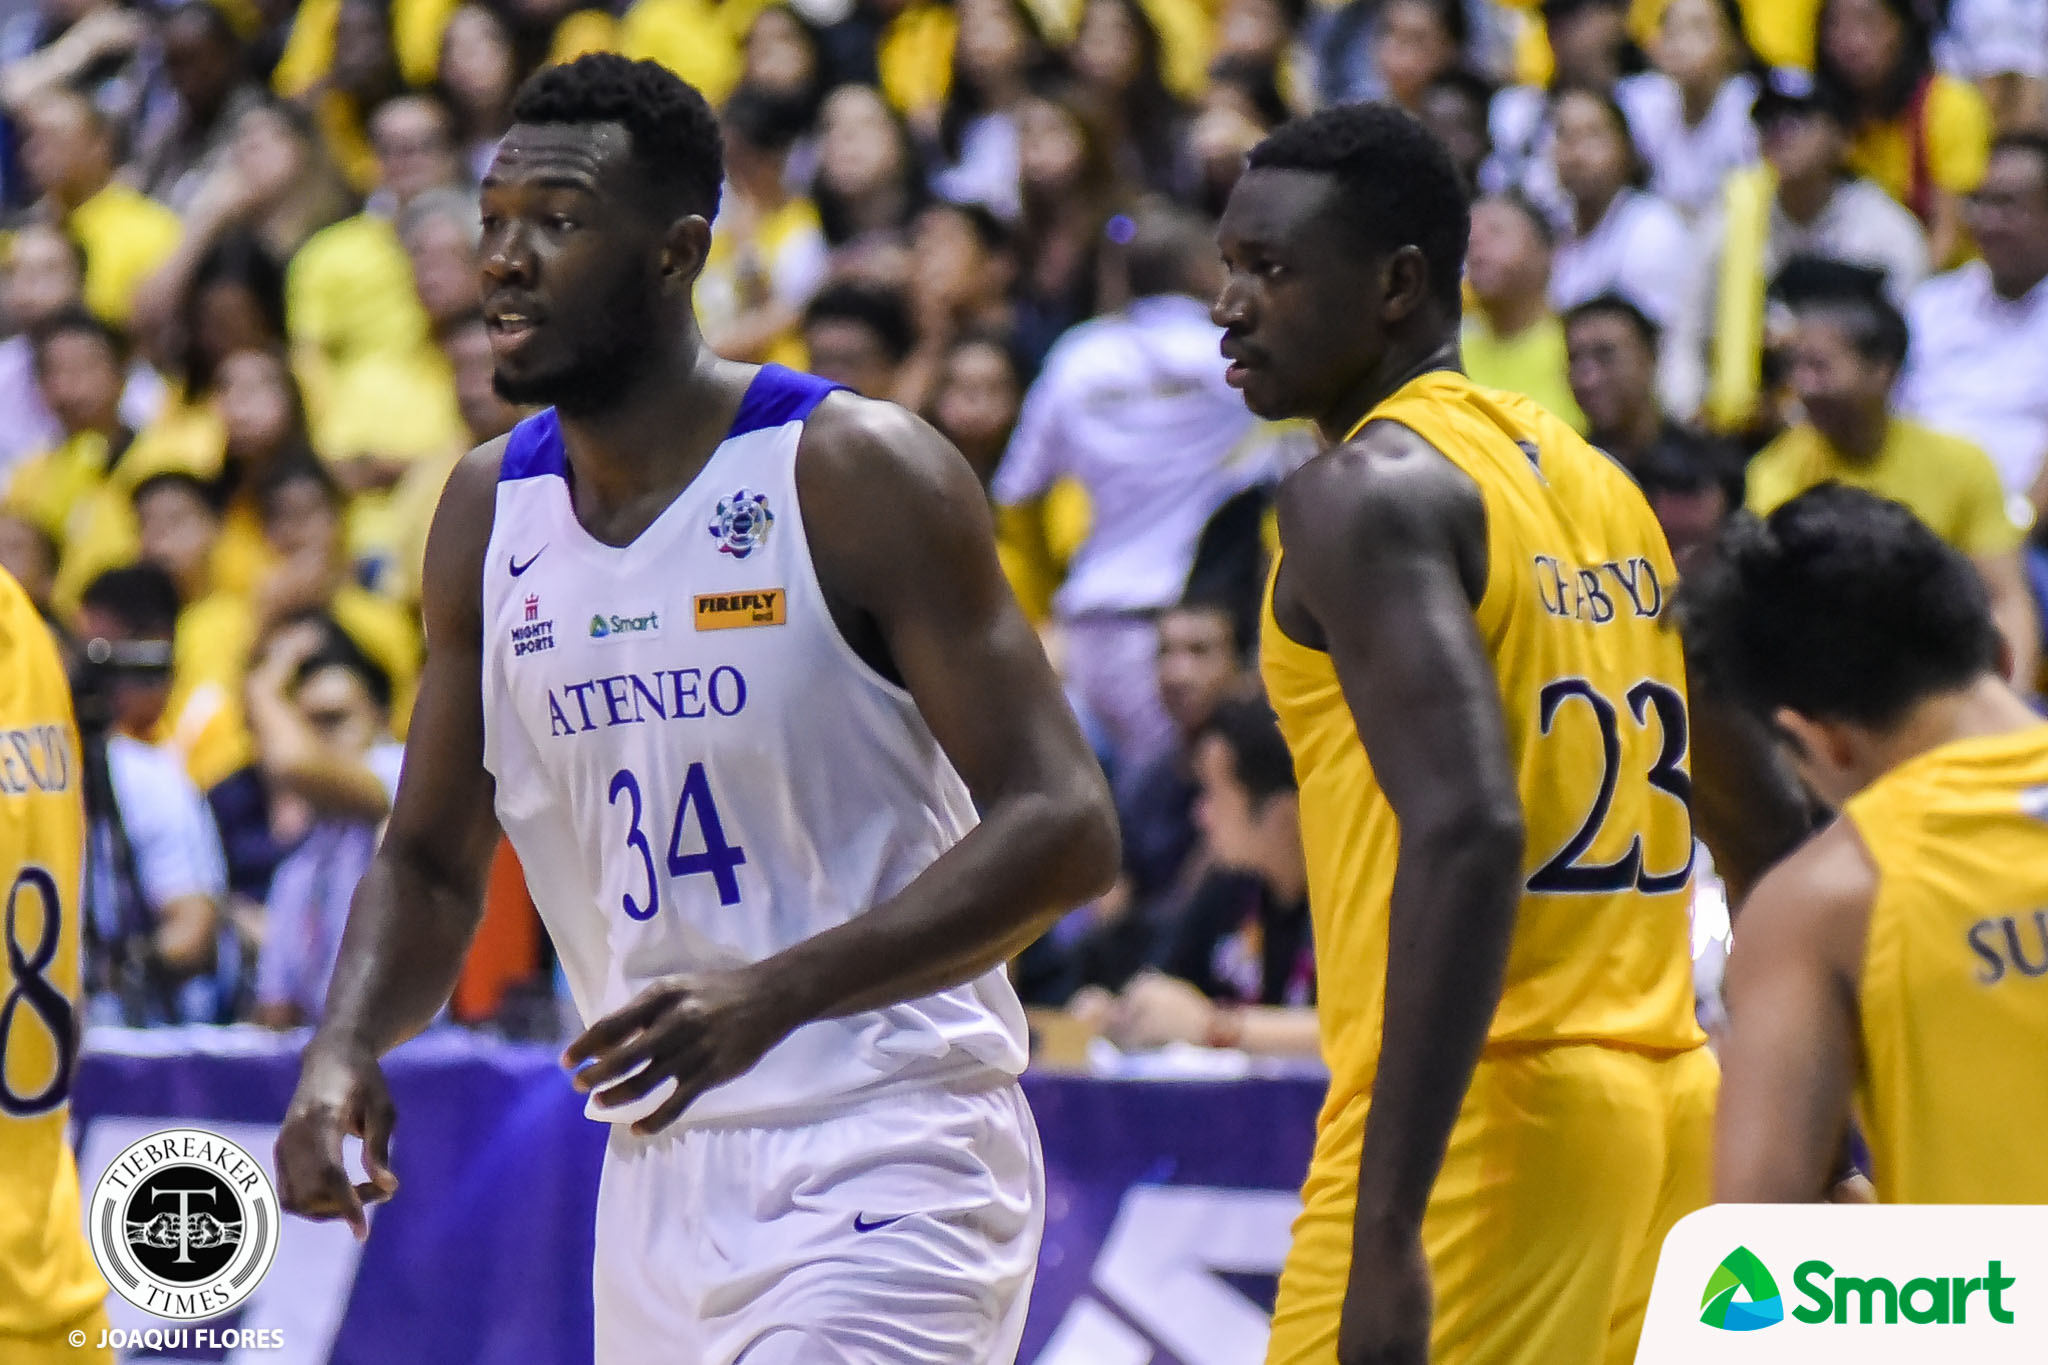 Tiebreaker Times Aldin Ayo takes blame for UST's Game One loss Basketball News UAAP UST  UST Men's Basketball UAAP Season 82 Men's Basketball UAAP Season 82 Aldin Ayo